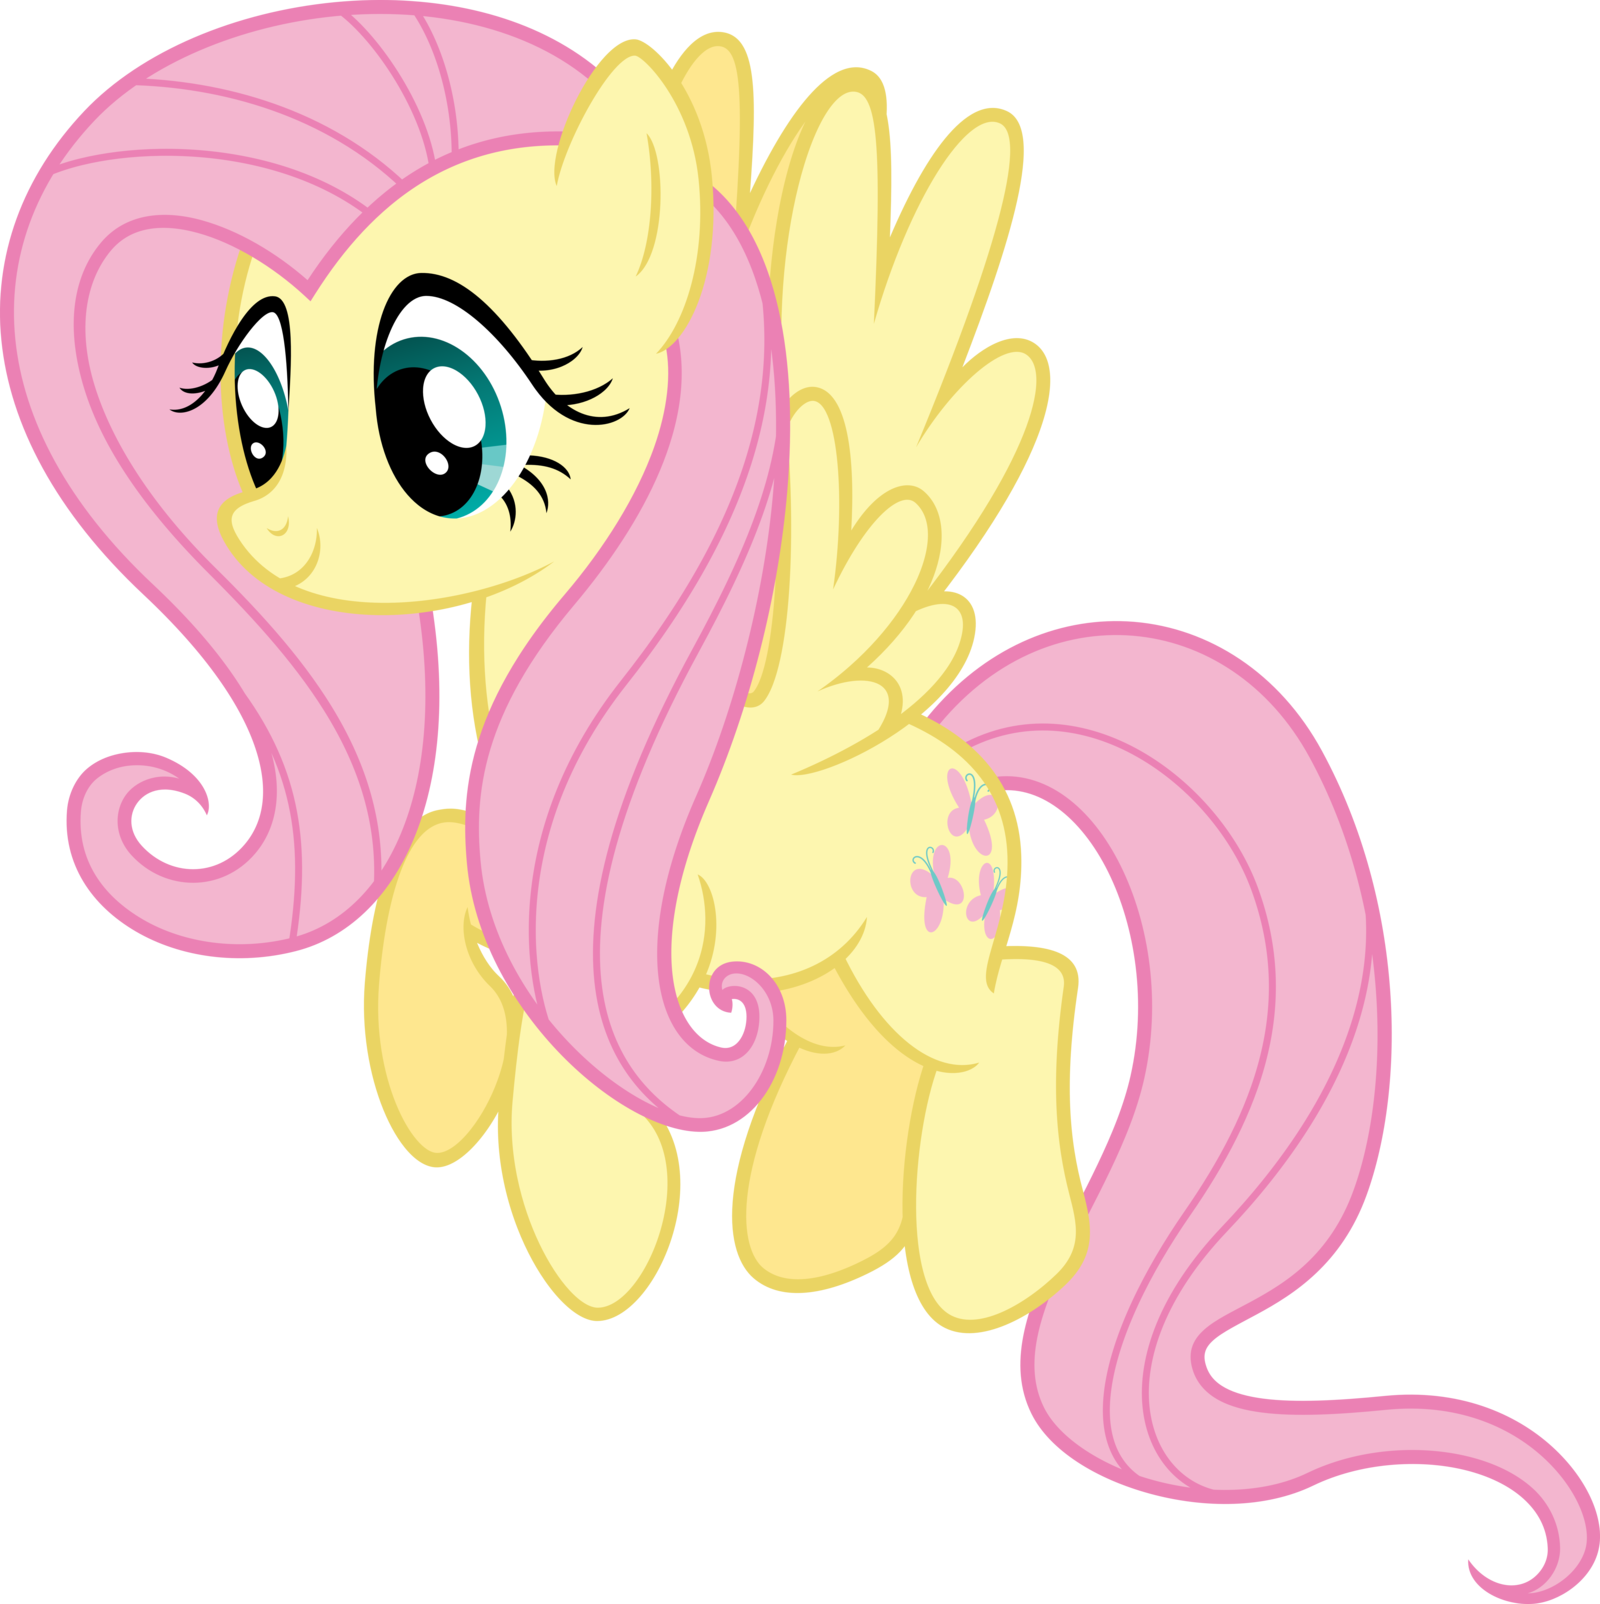 Pony Fluttershy Png Free Pony Fluttershy Png Transparent Images 30724 Pngio